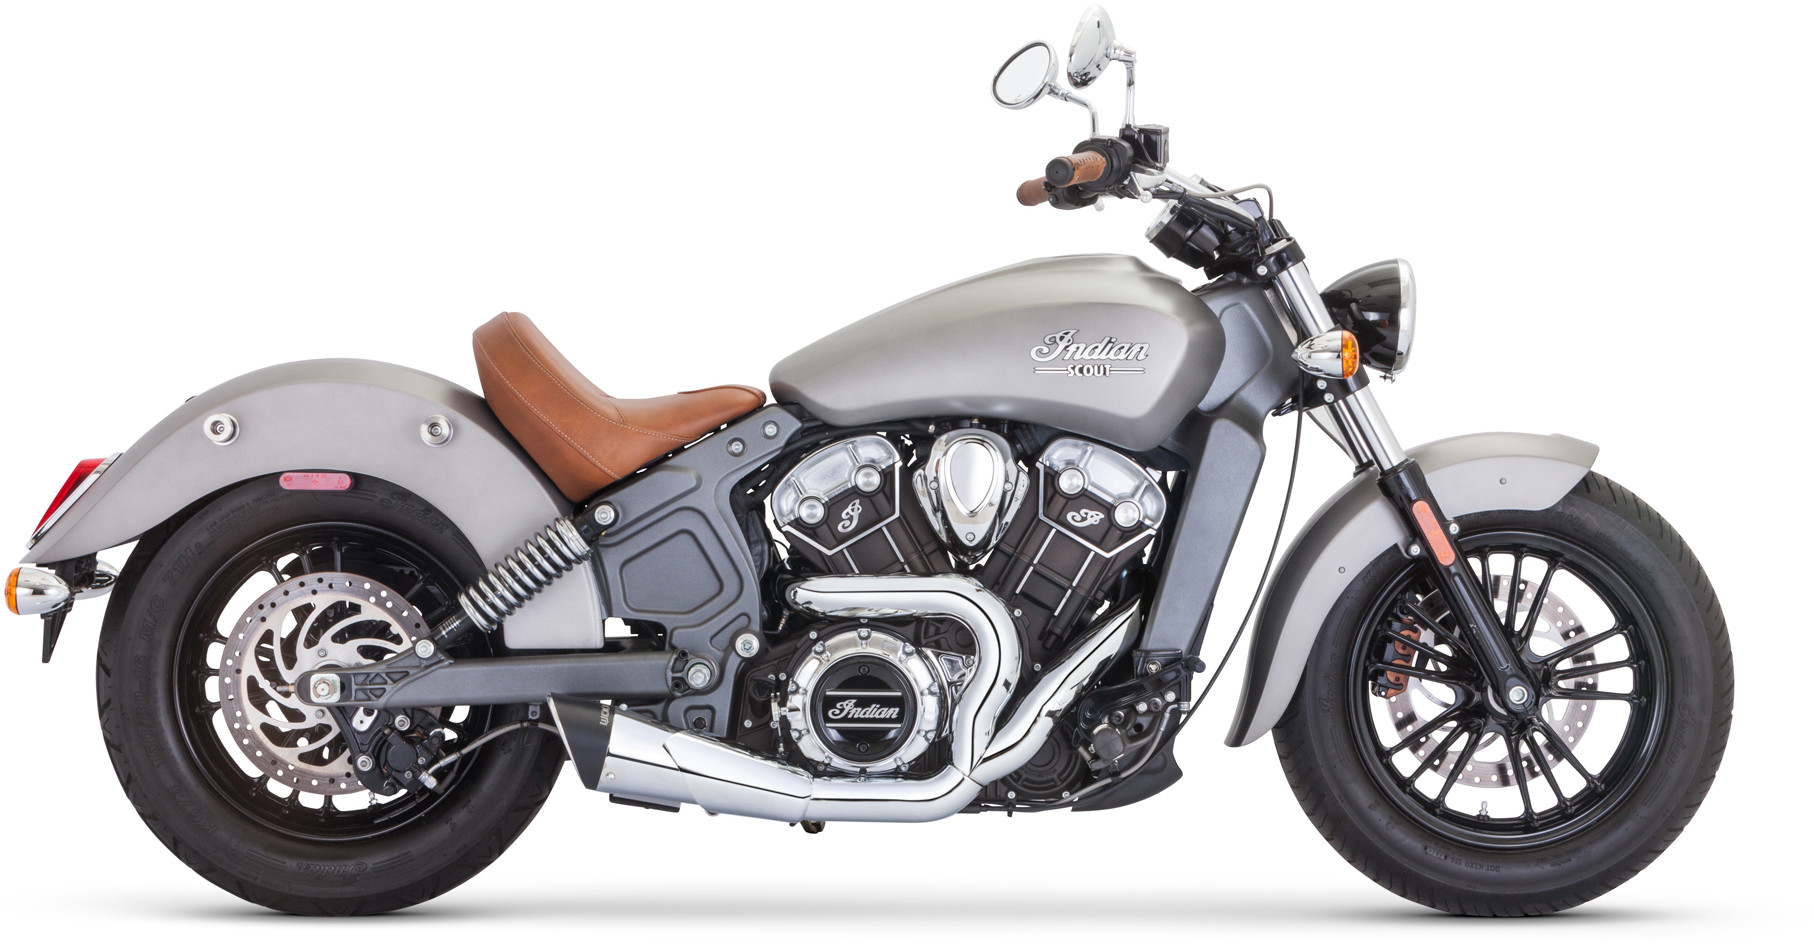 freedom scout combat shorty 2 into 1 exhaust chrome indian scout scout sixty scout bobber 2015 2020